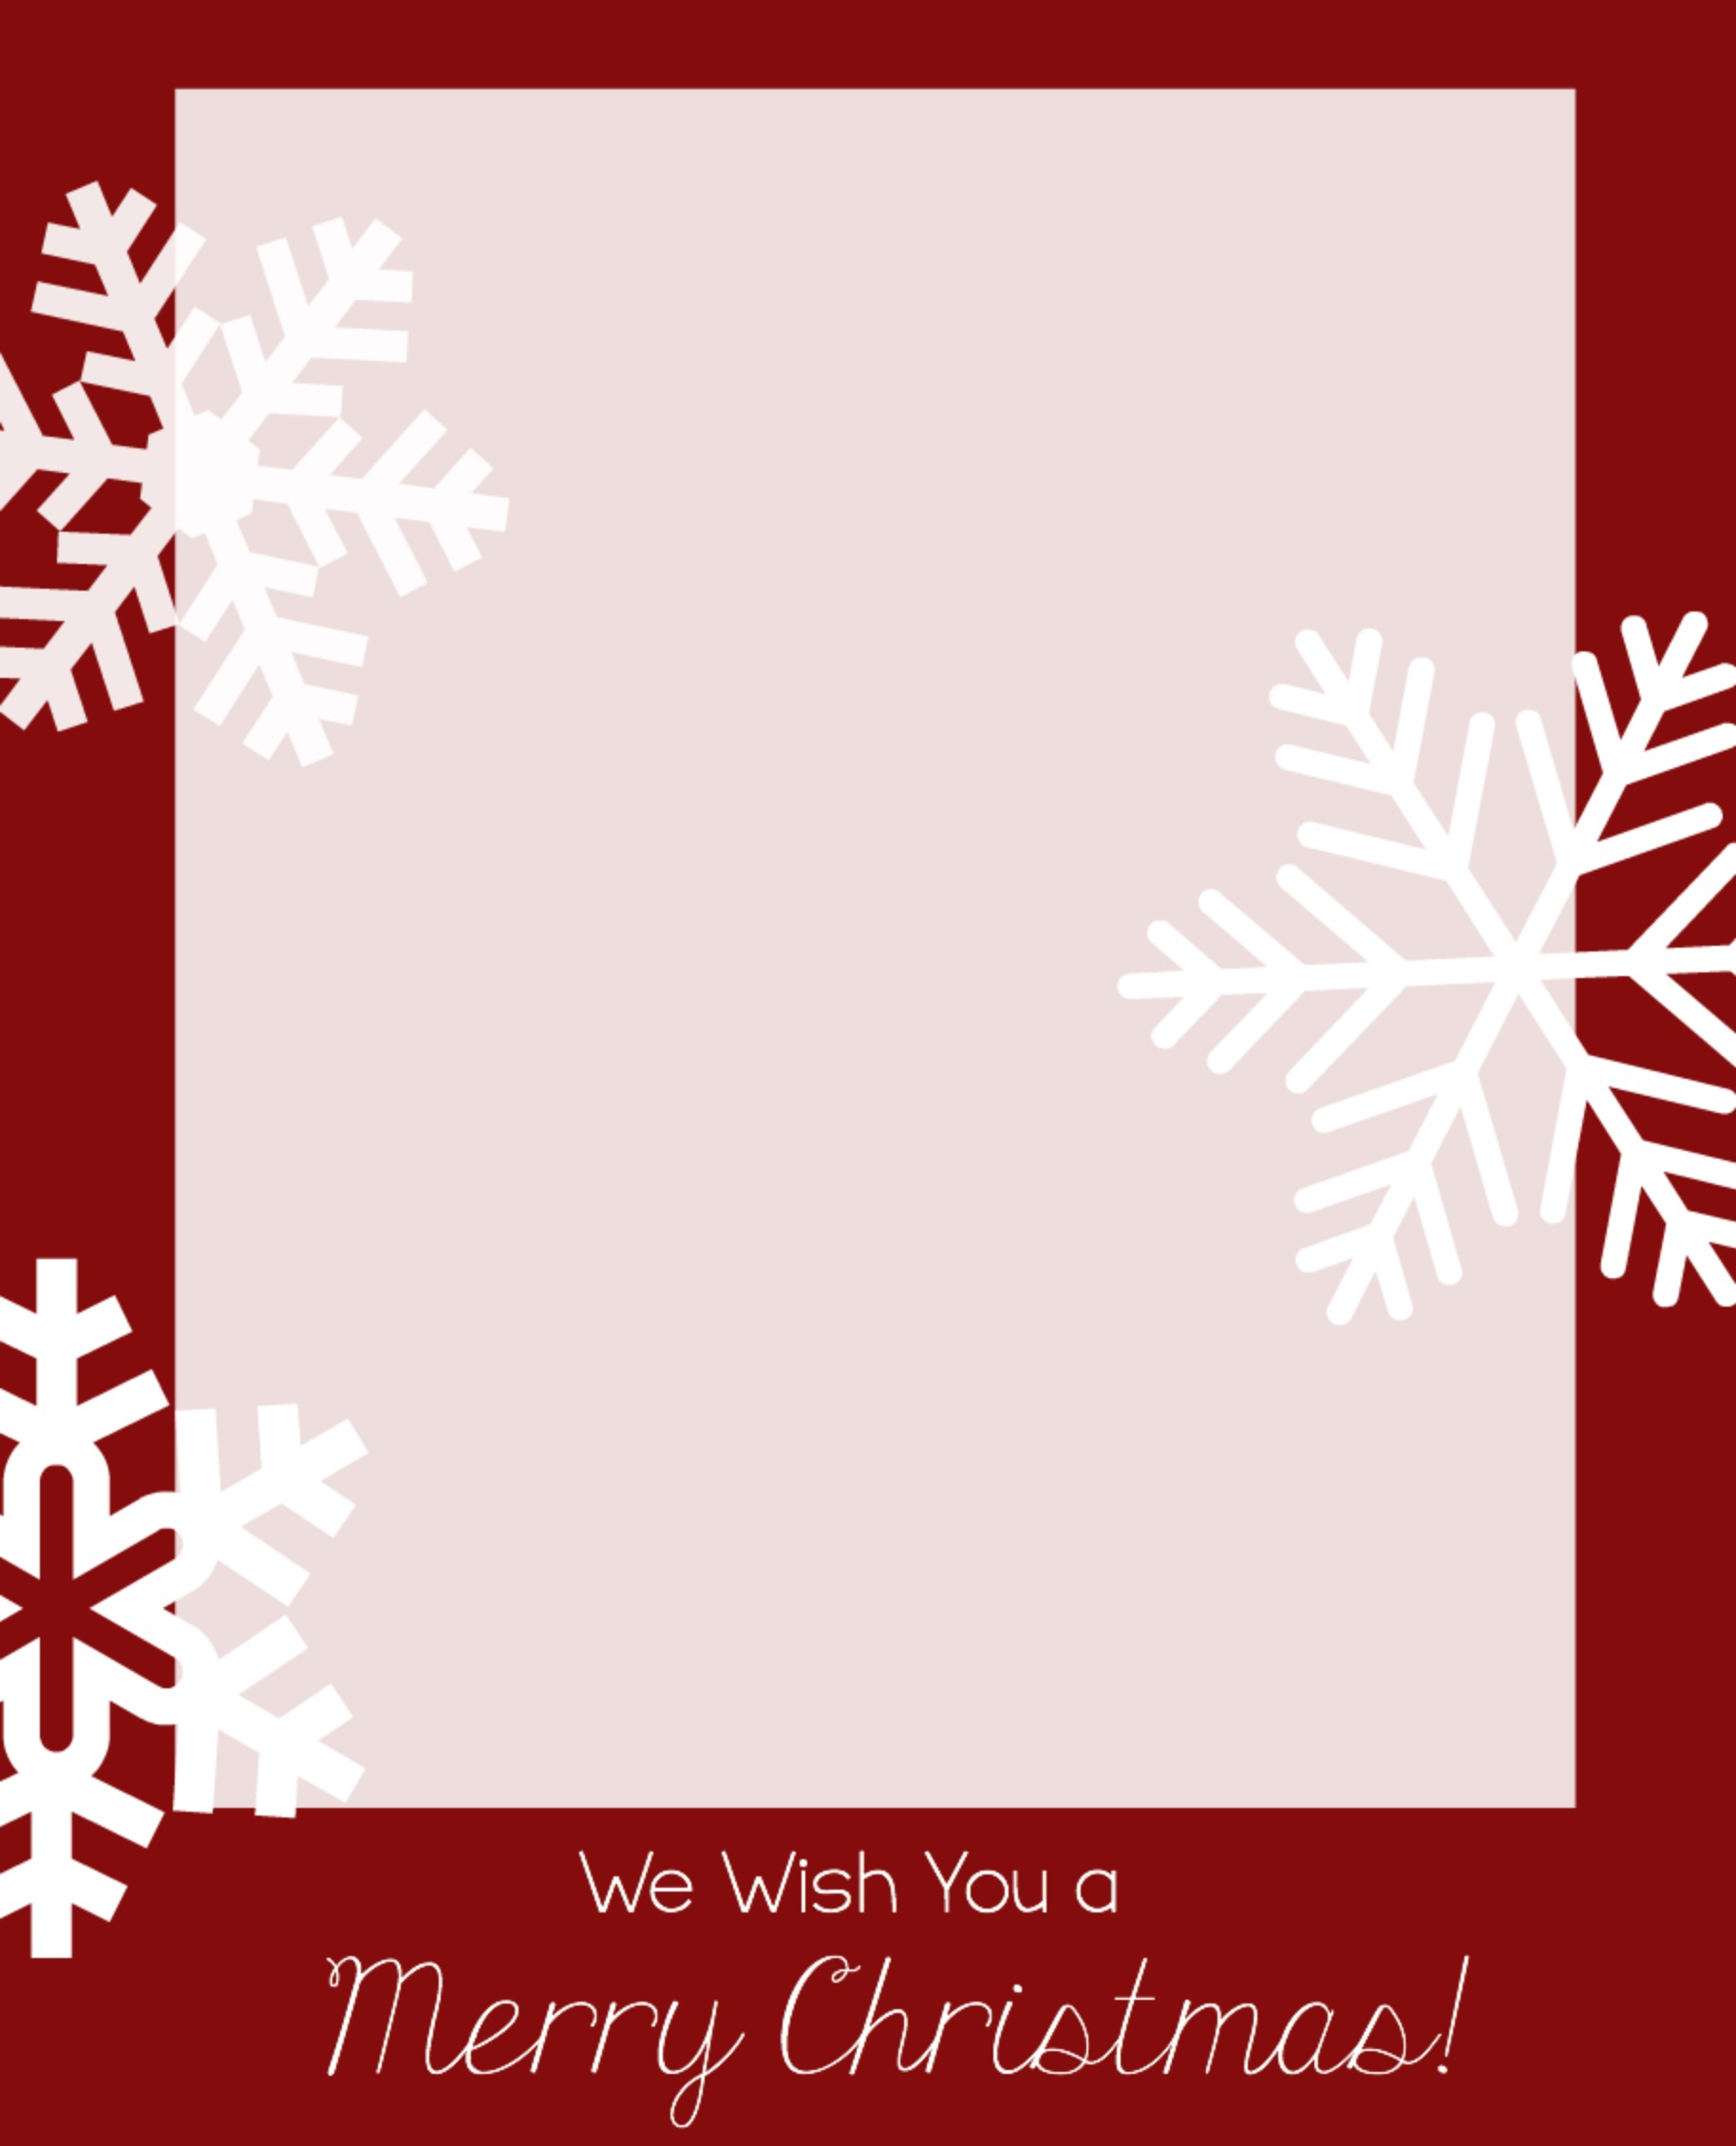 Free christmas card templates crazy little projects christmas card designs m4hsunfo